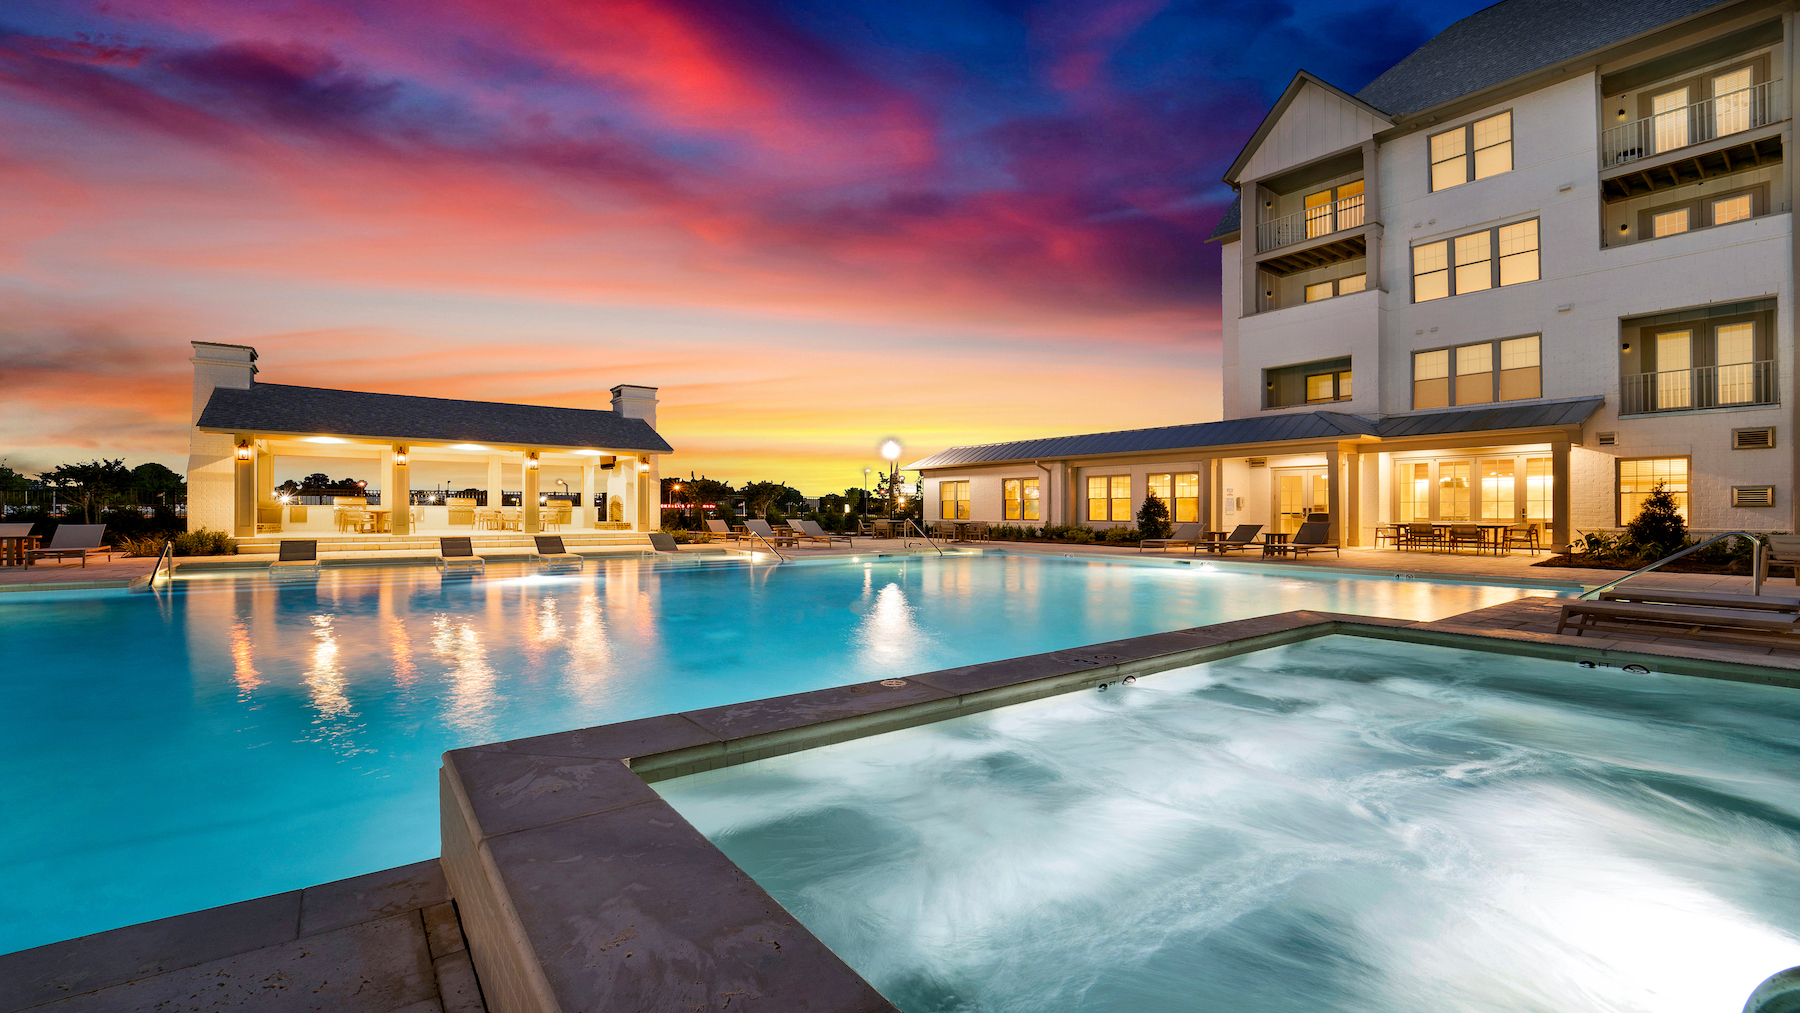 View of Highland at Spring Hill at sunset by the pool and spa